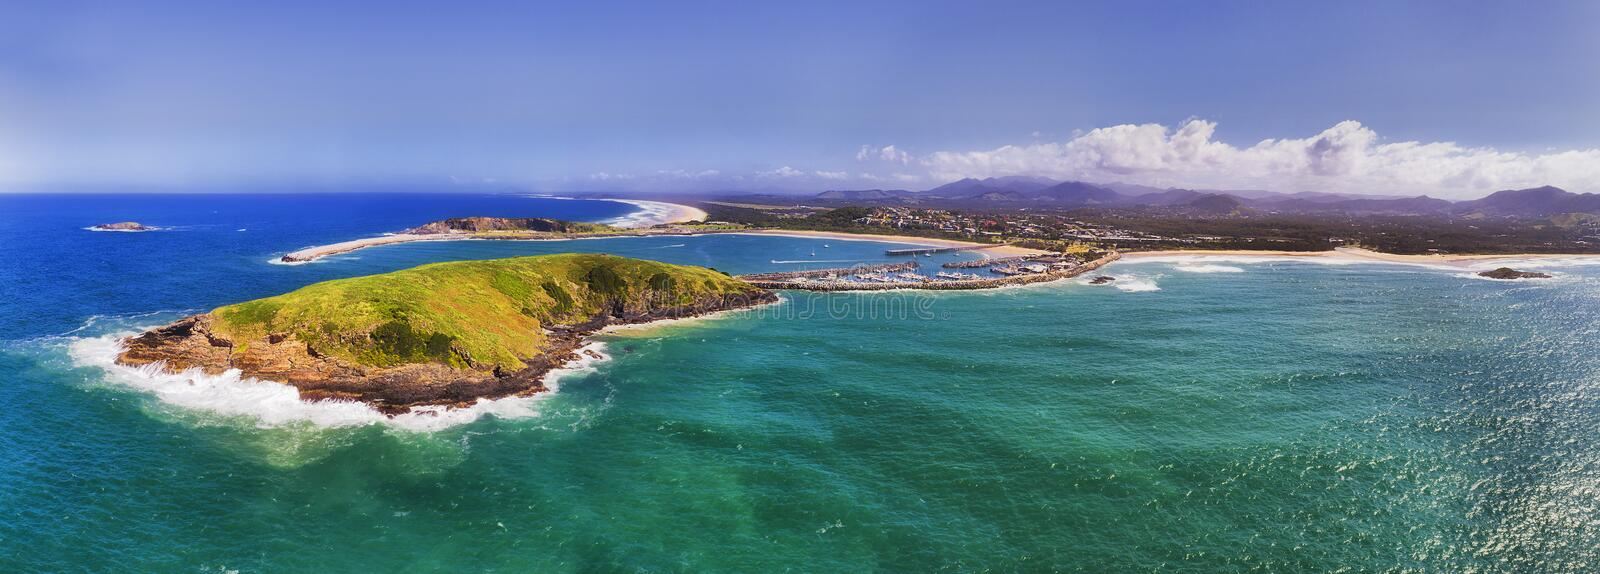 D Coffs Harbour From sea pan stock photography